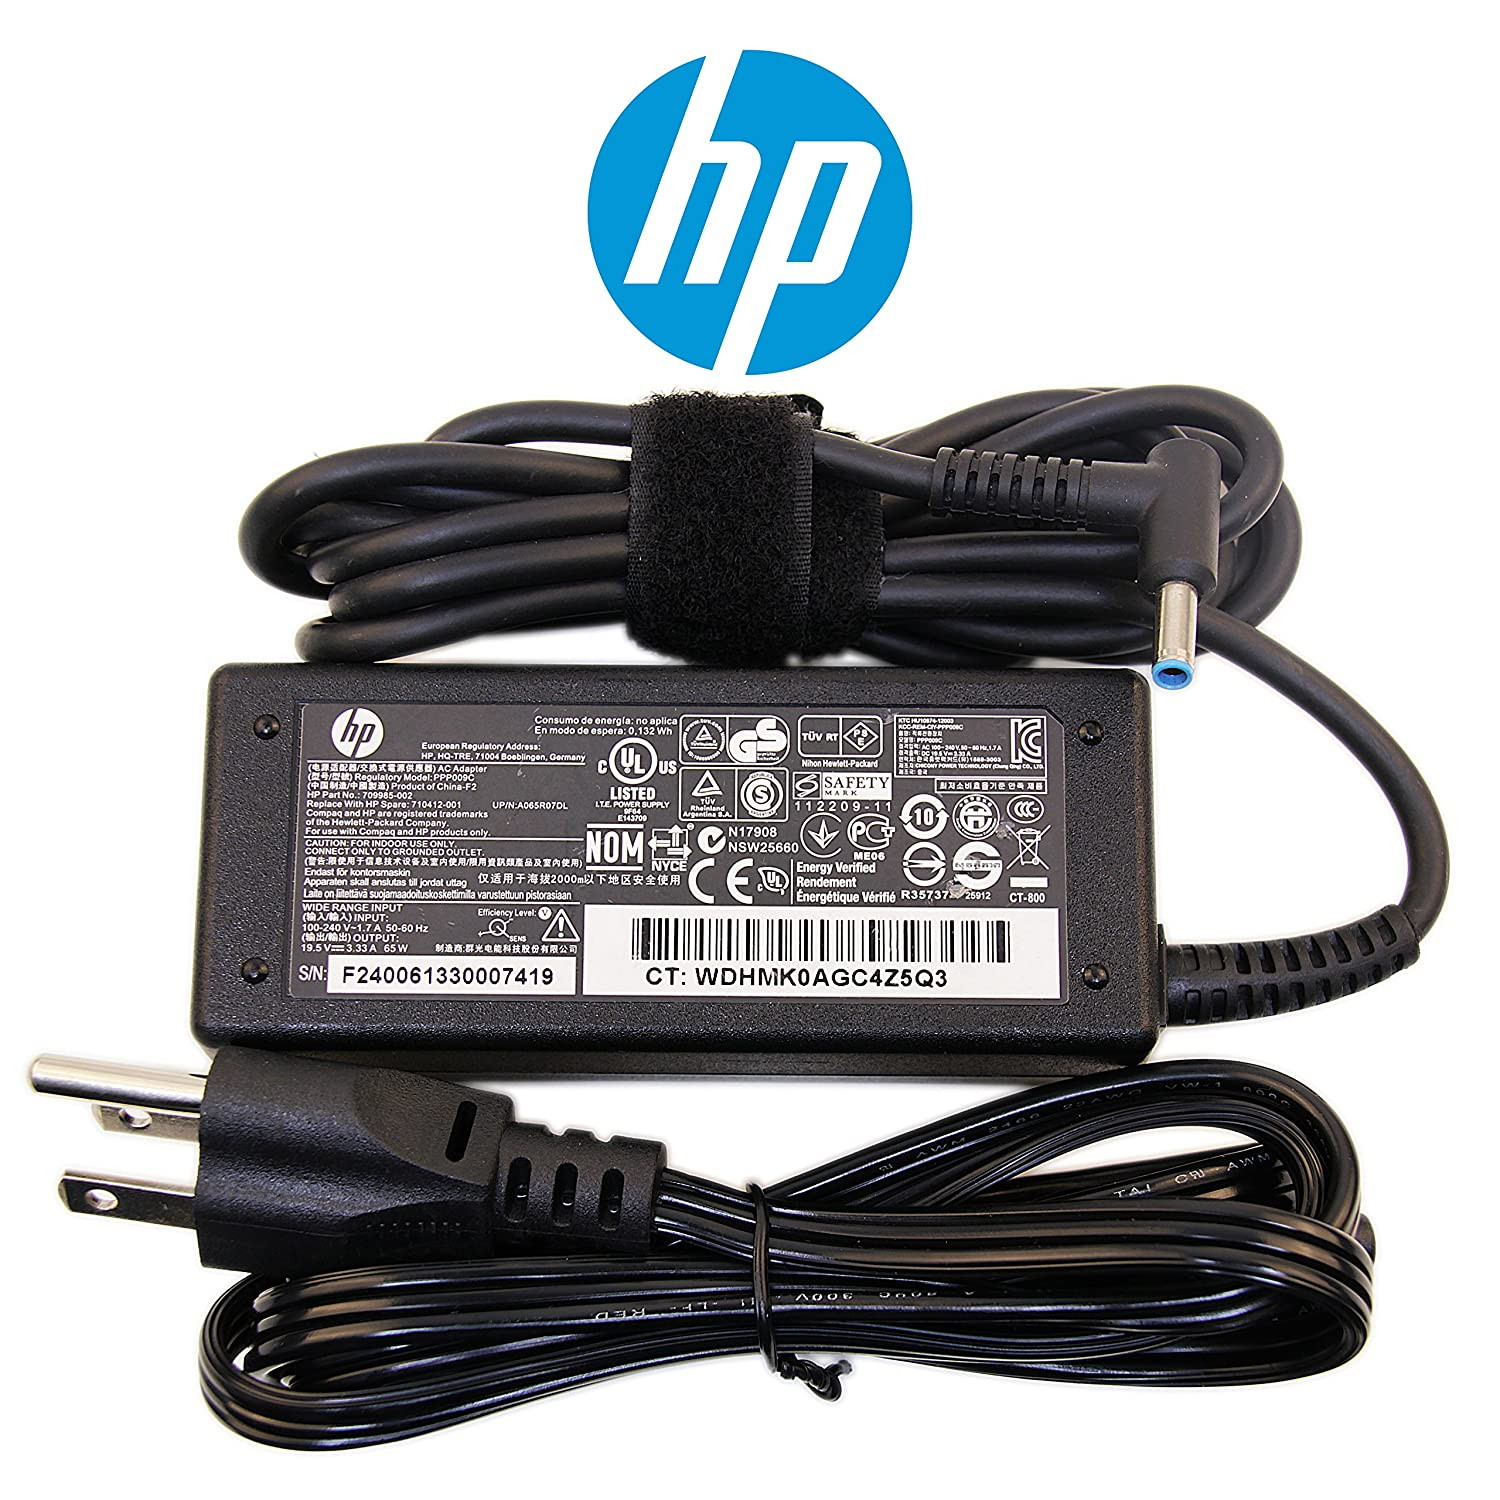 HP Original 65W Slim Charger for ProBook Laptop Notebook Power-Adapter-Cord